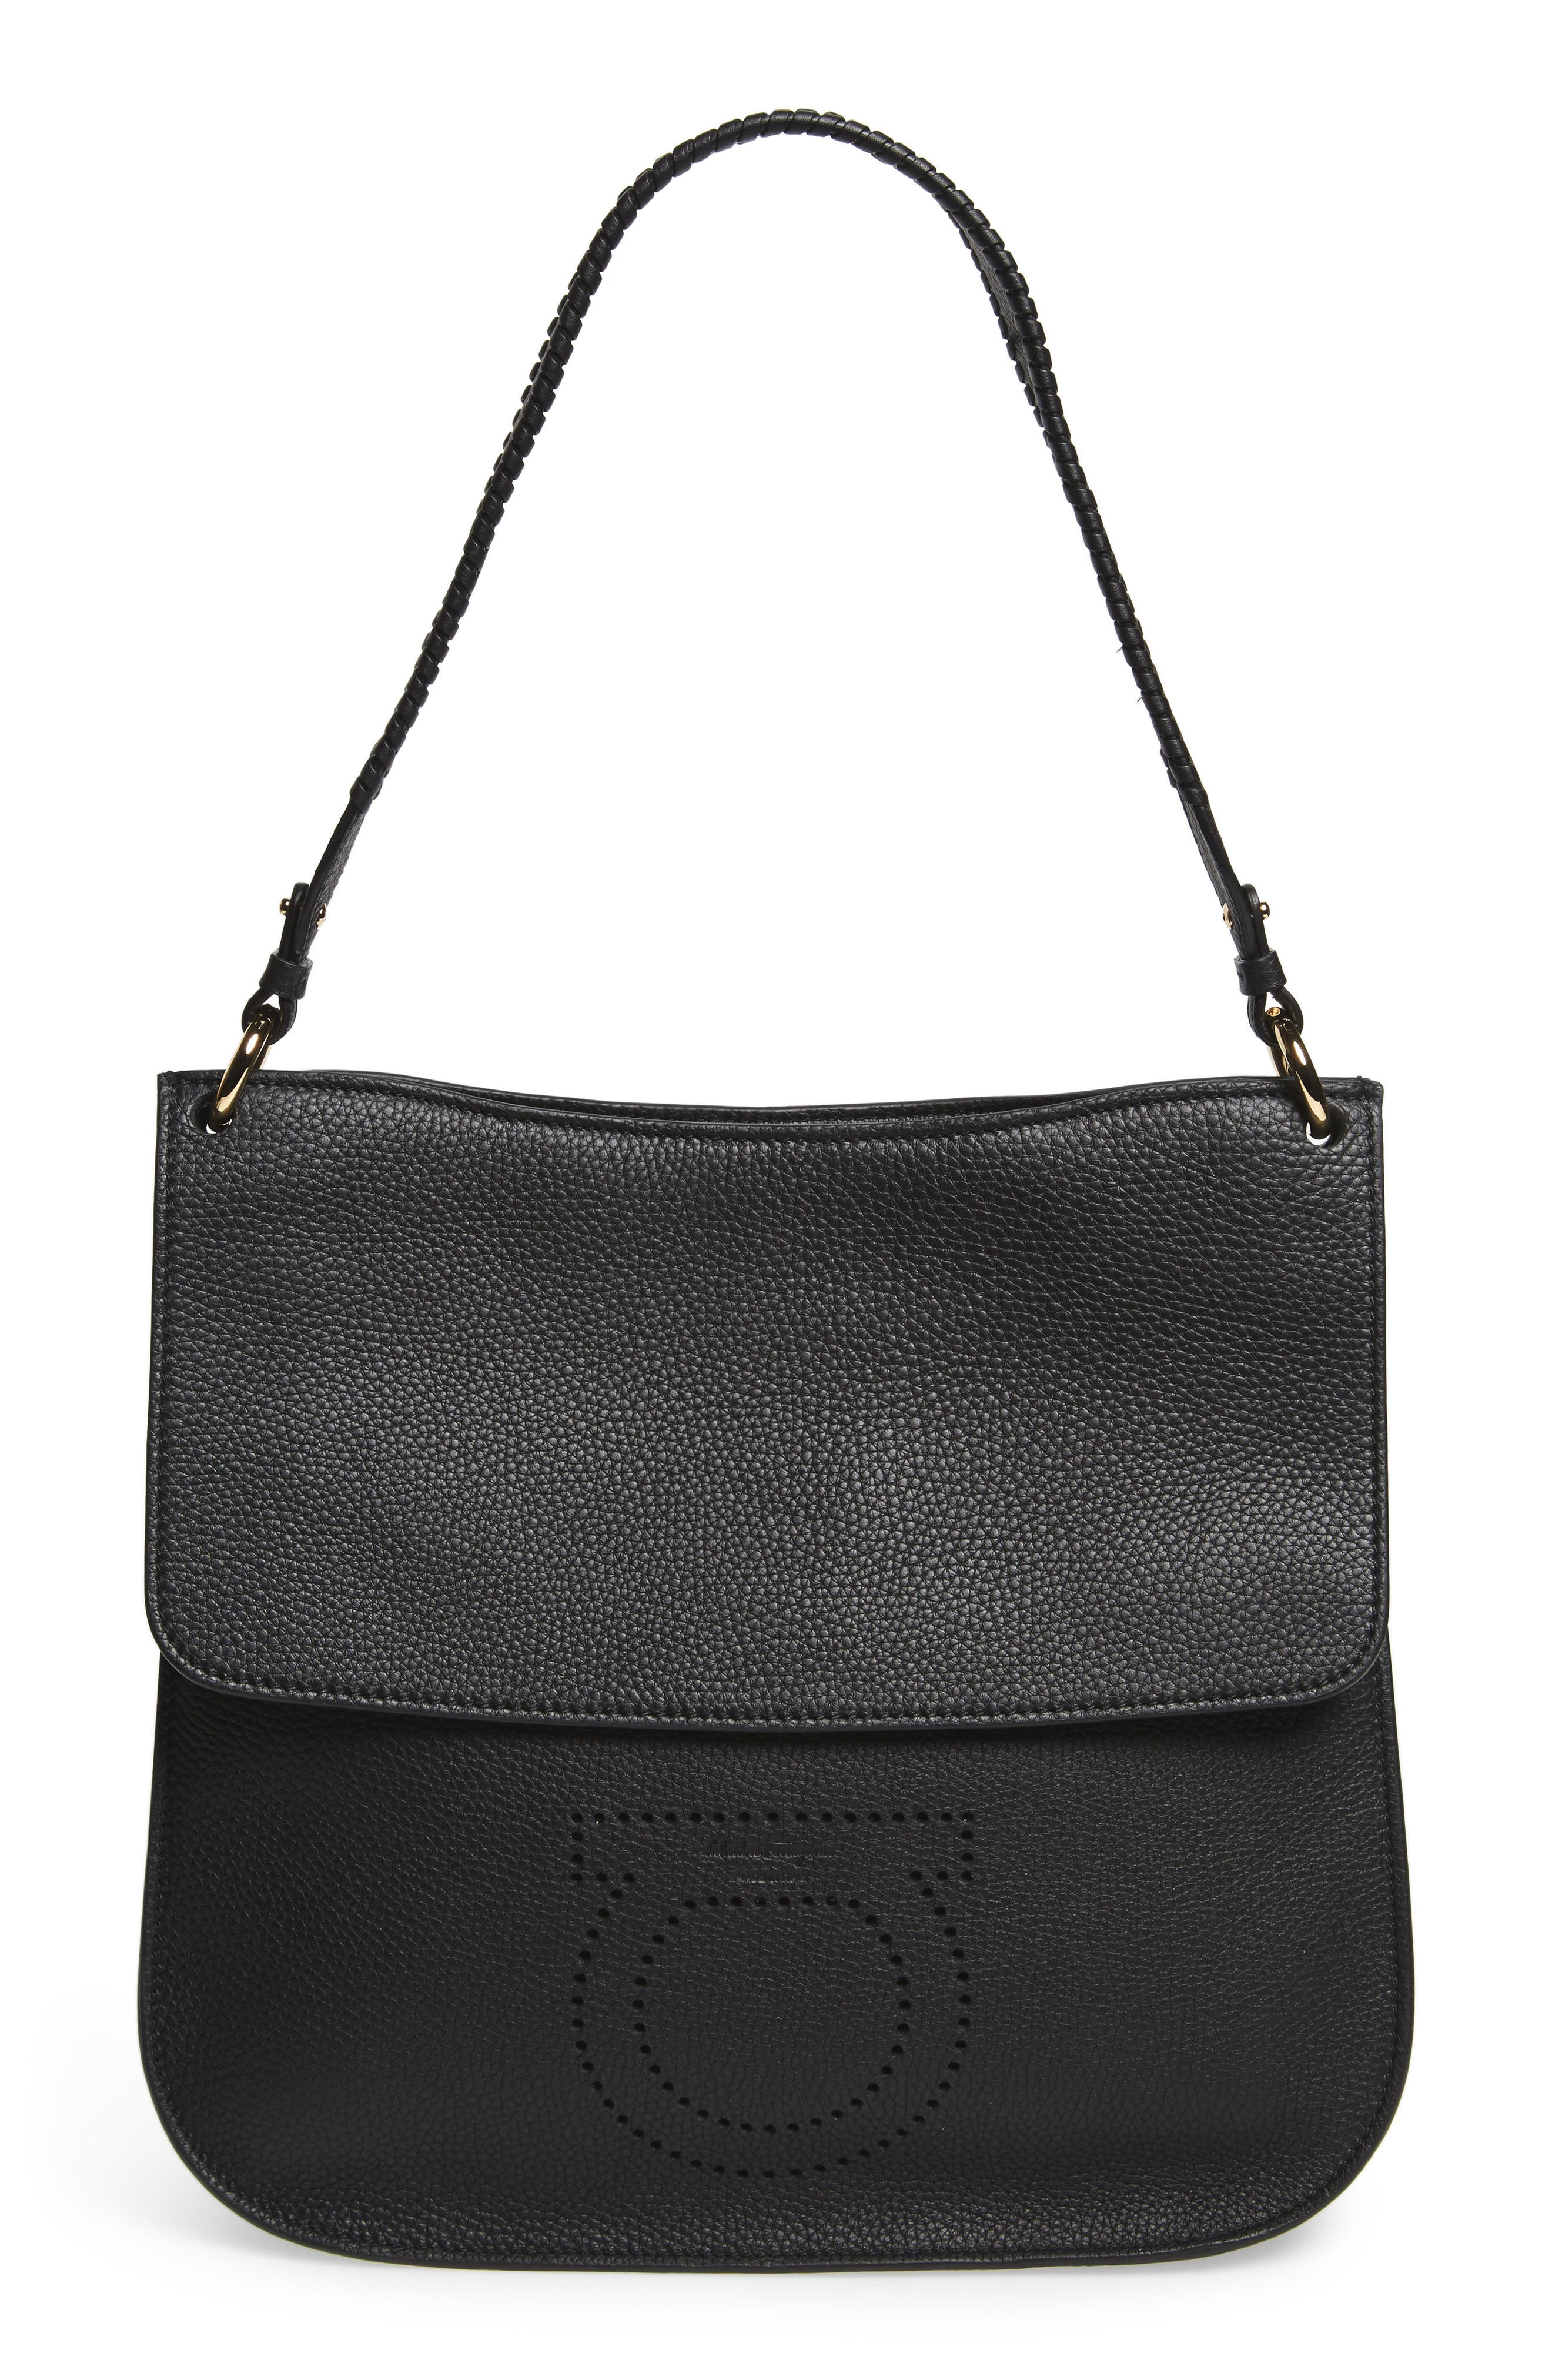 Salvatore Ferragamo Pebbled Leather Hobo Bag